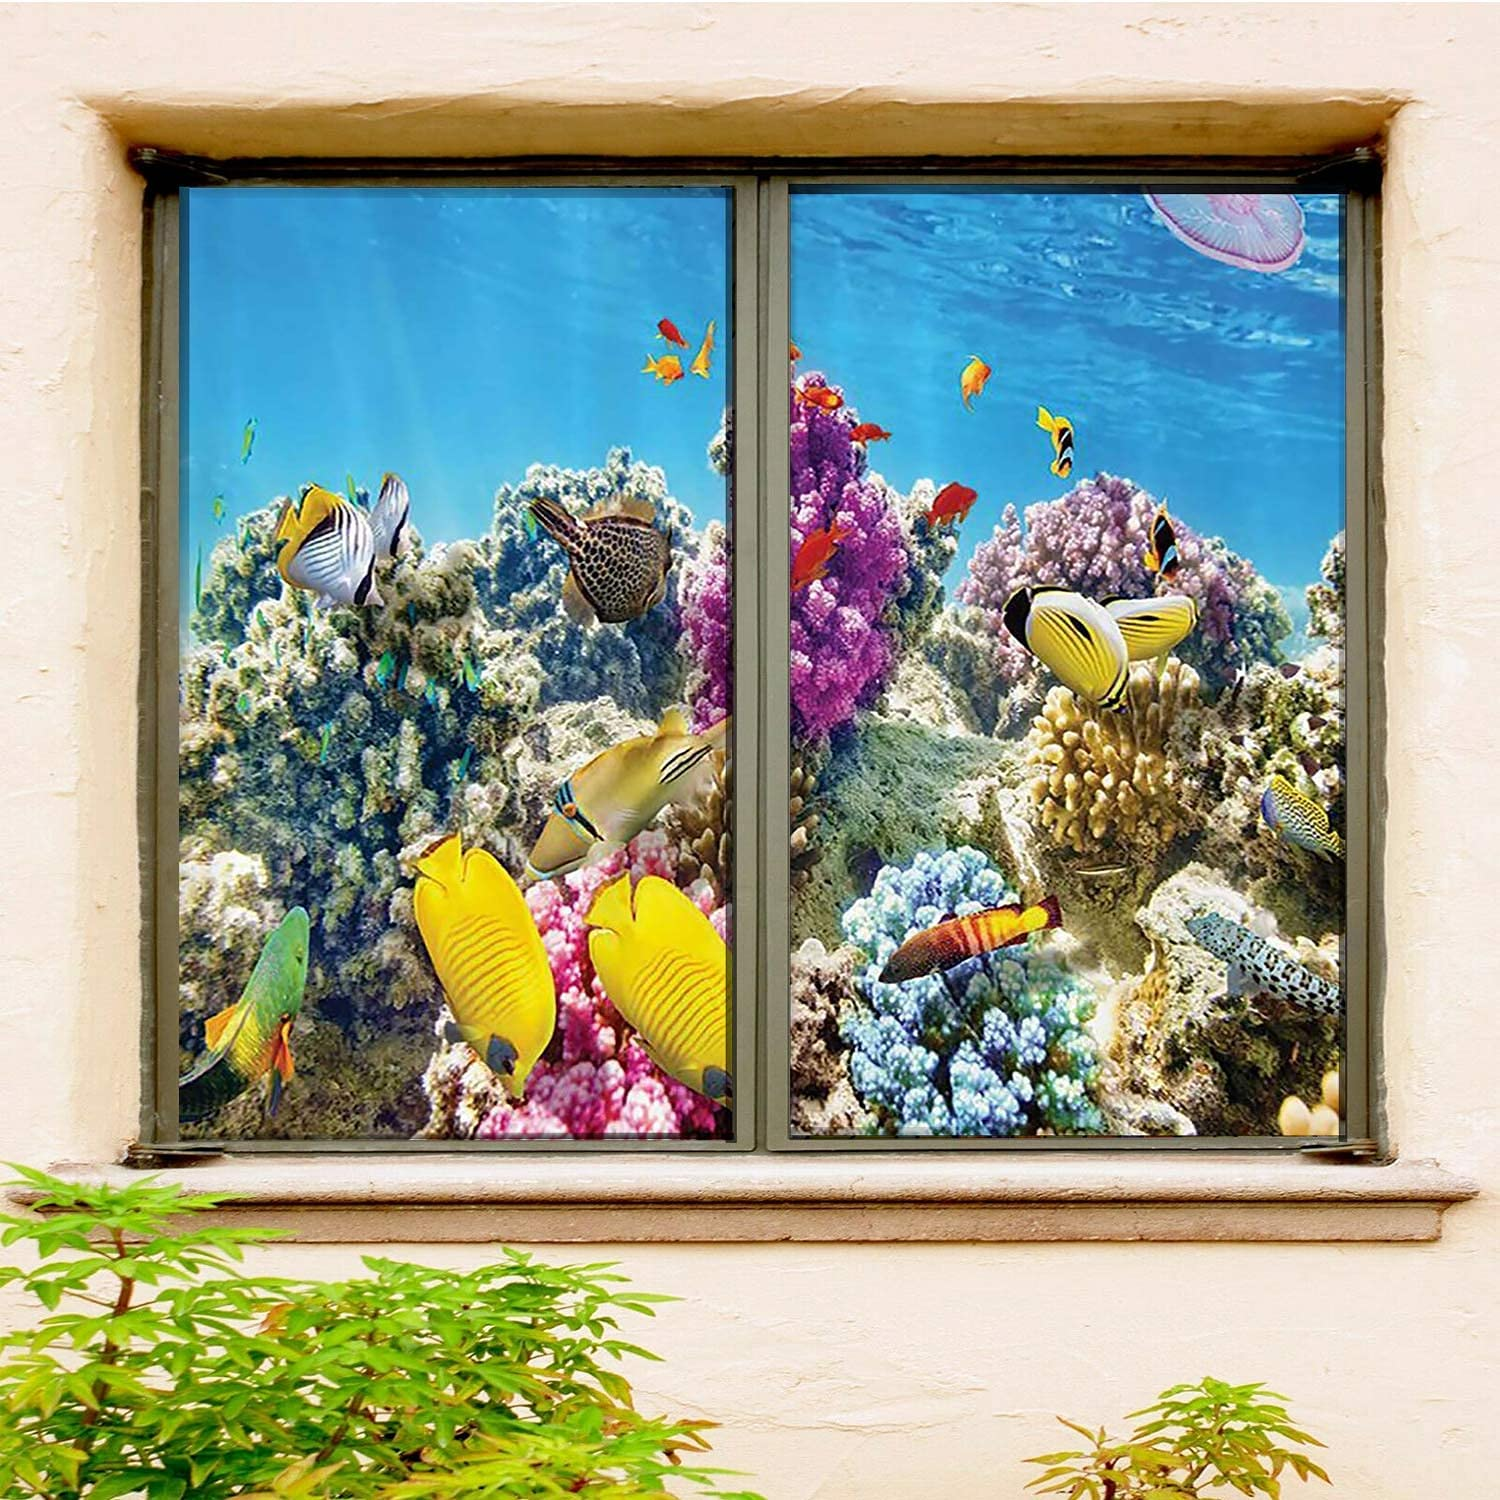 Ocean Decor Collection Static Factory outlet Cling Film 2 PCS New color Set Window